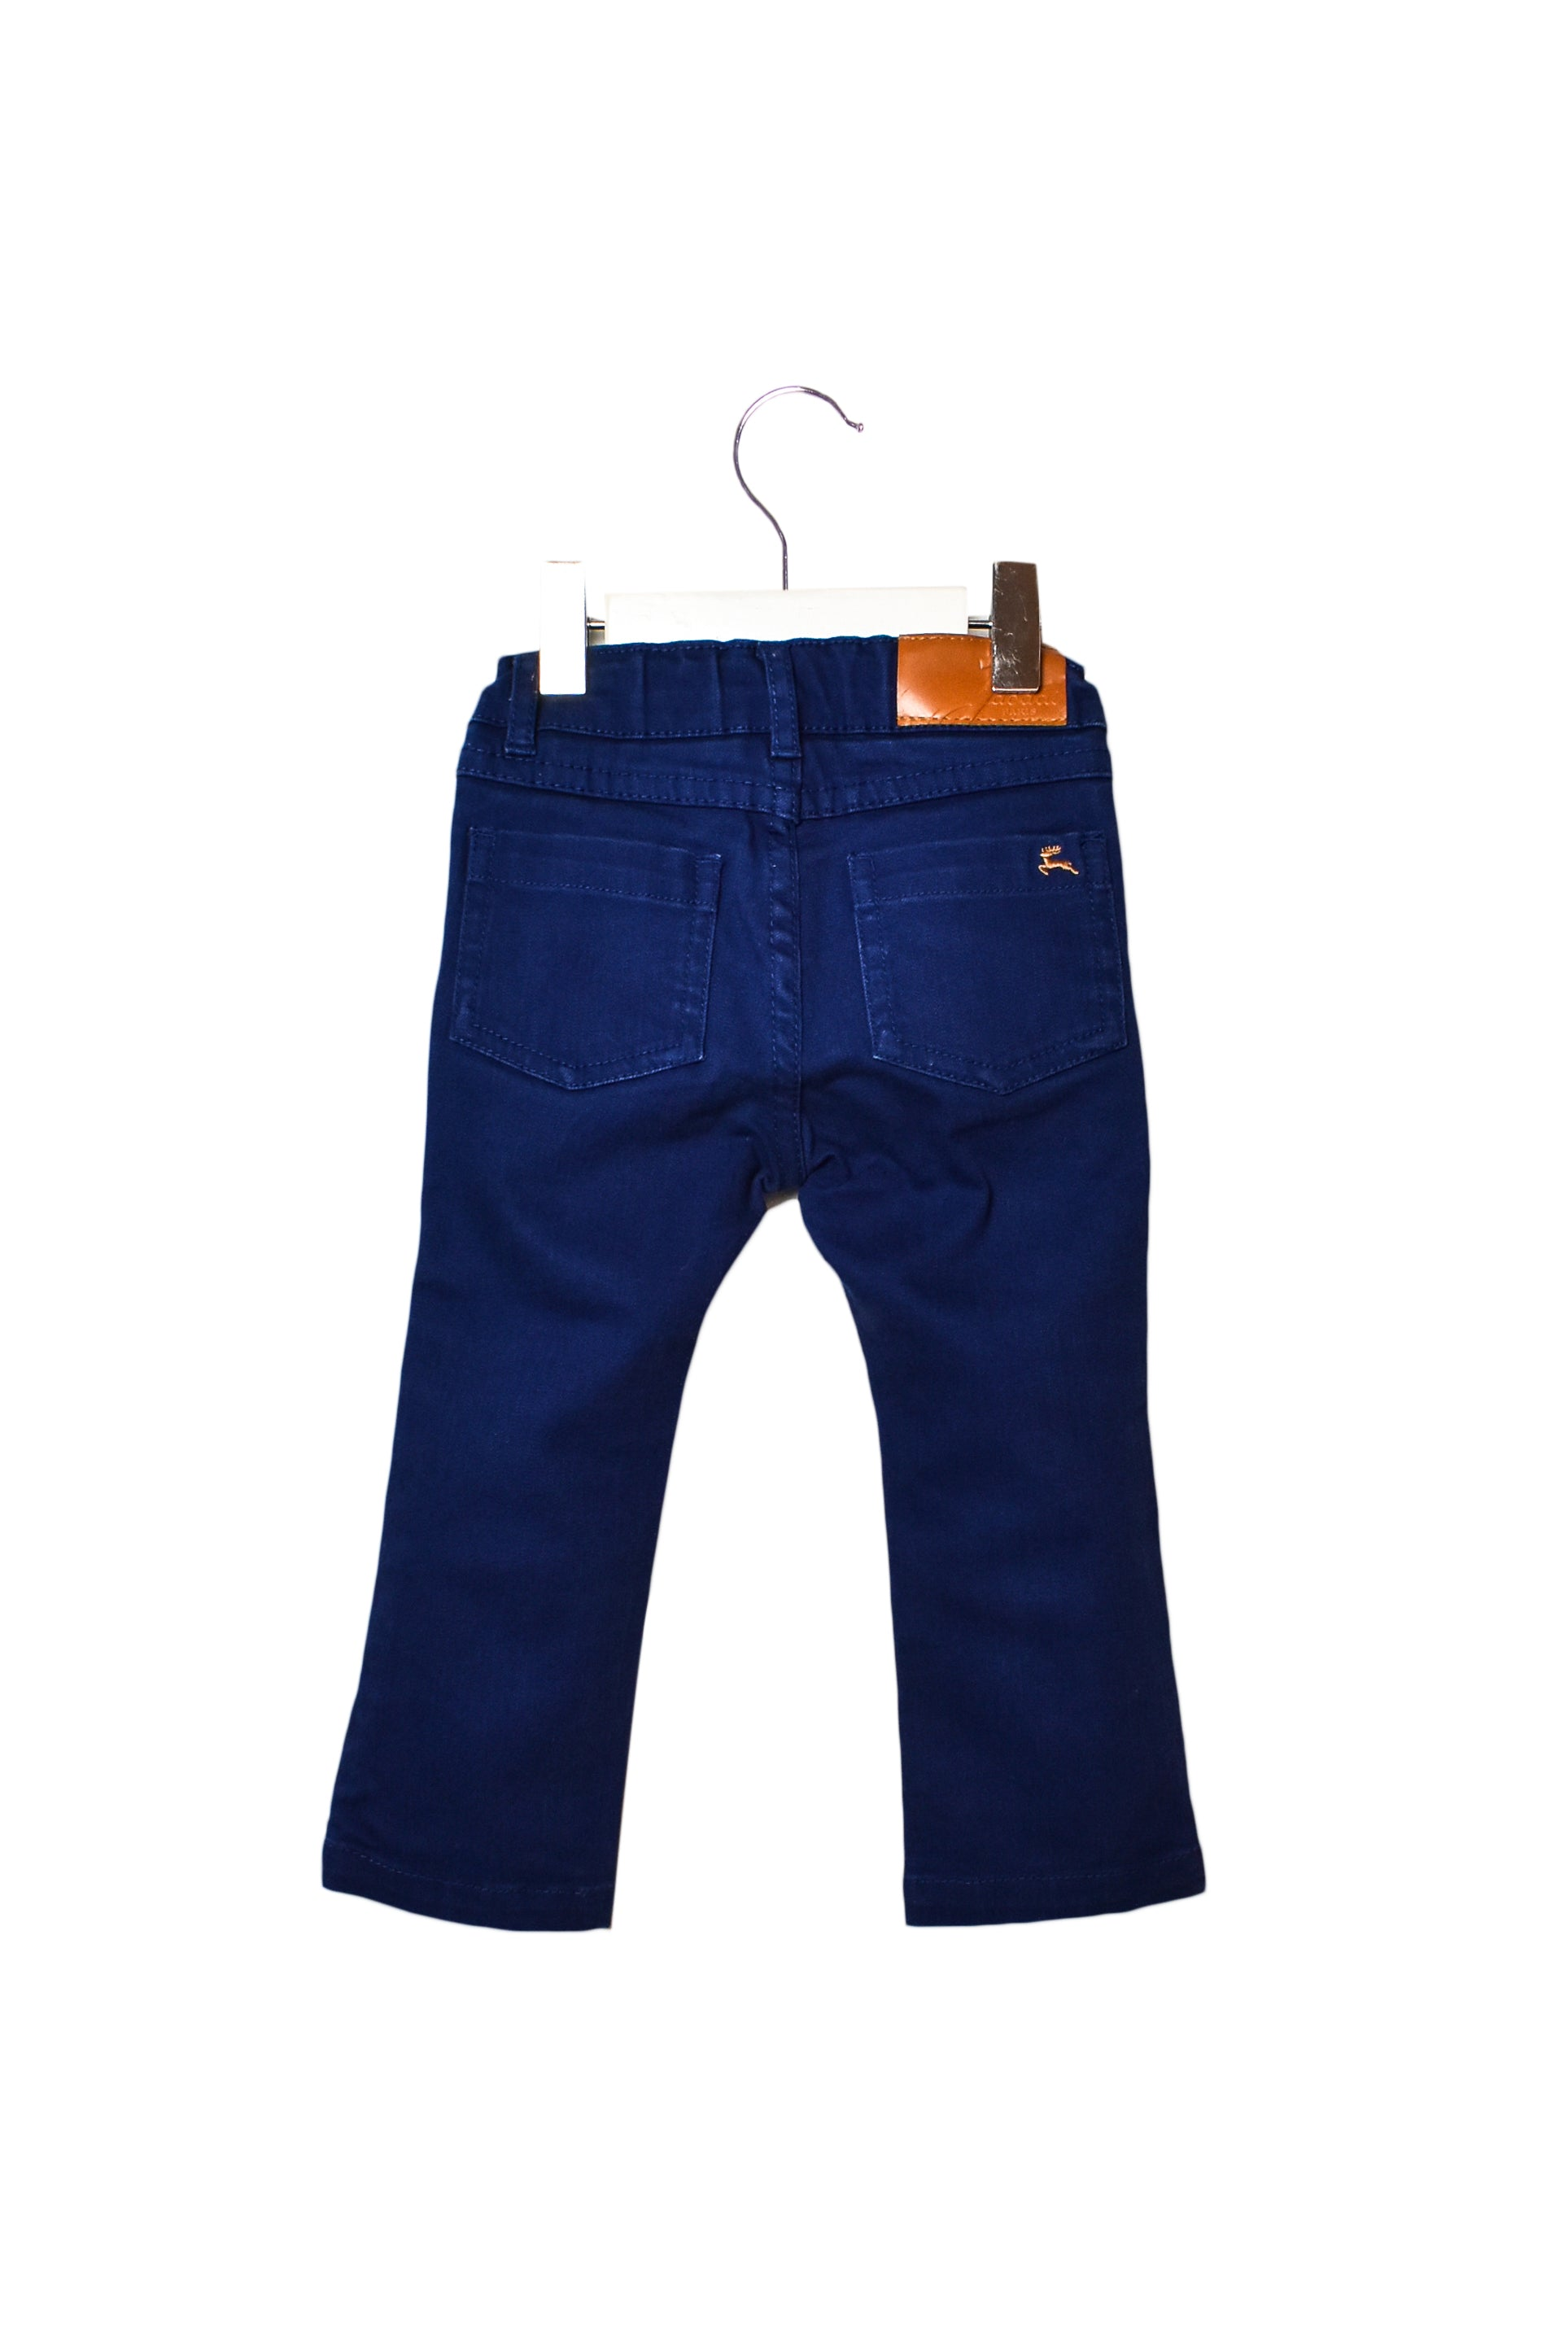 10008600 Jacadi Baby~Jeans 12M at Retykle